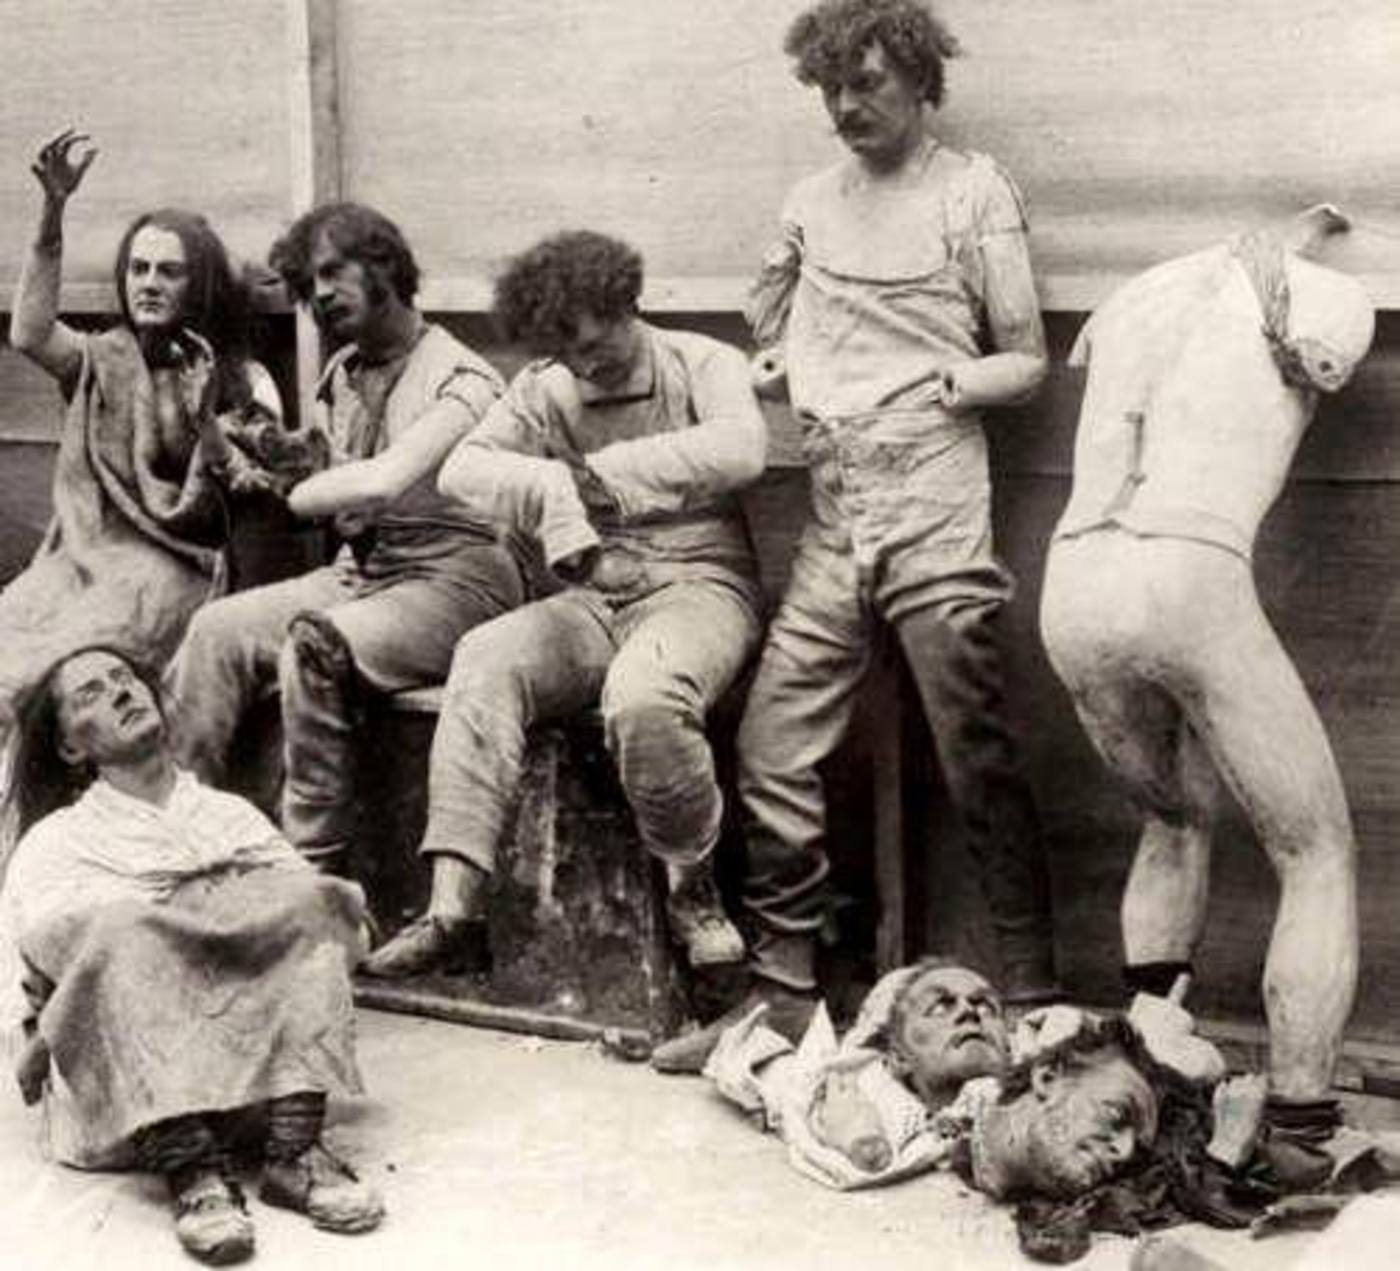 Melted and damaged mannequins after a fire at Madam Tussaud's Wax Museum in London, 1925